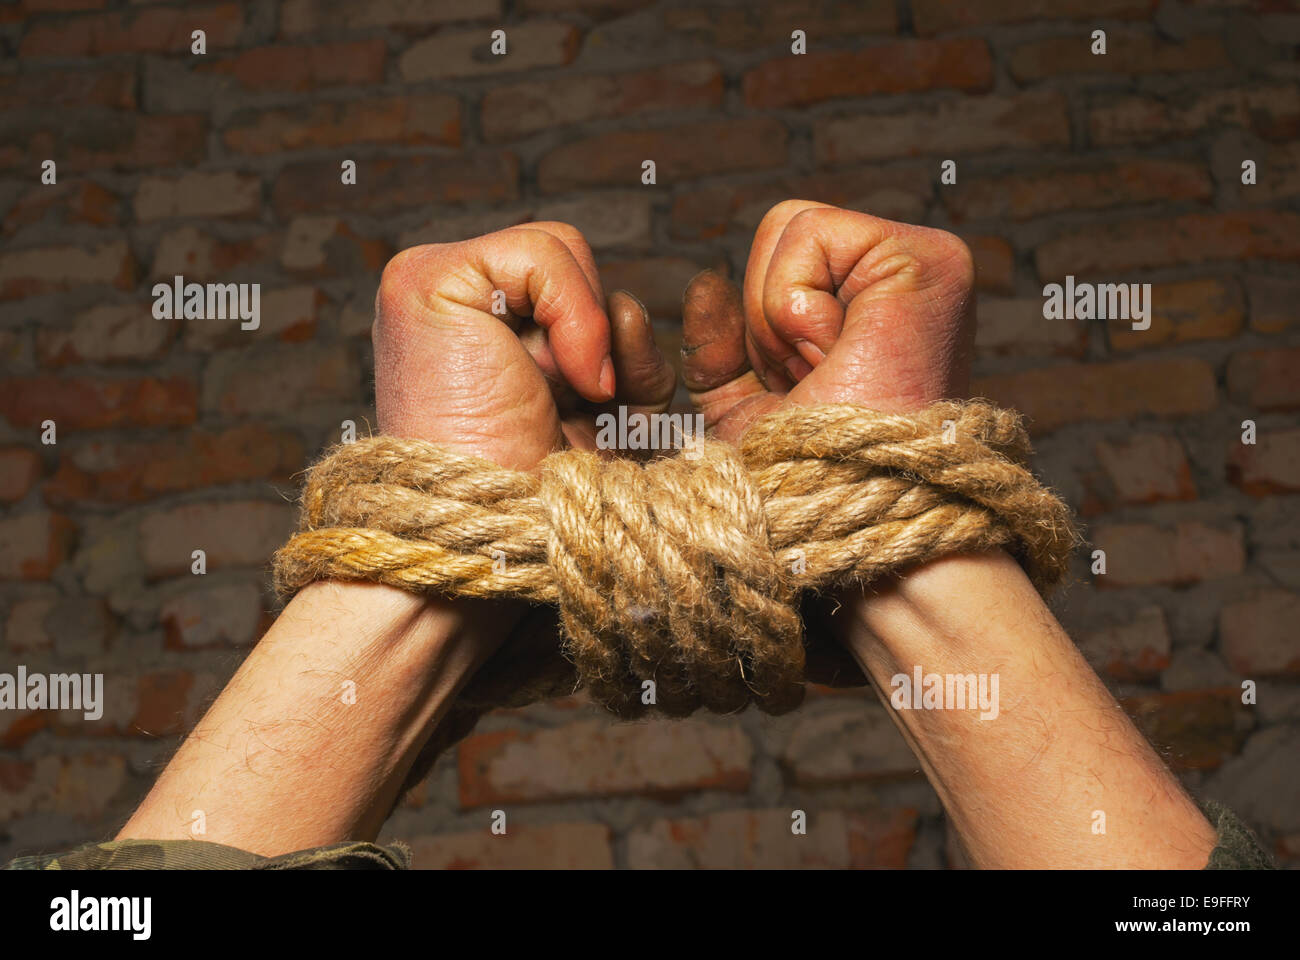 Hands tied up with rope - Stock Image